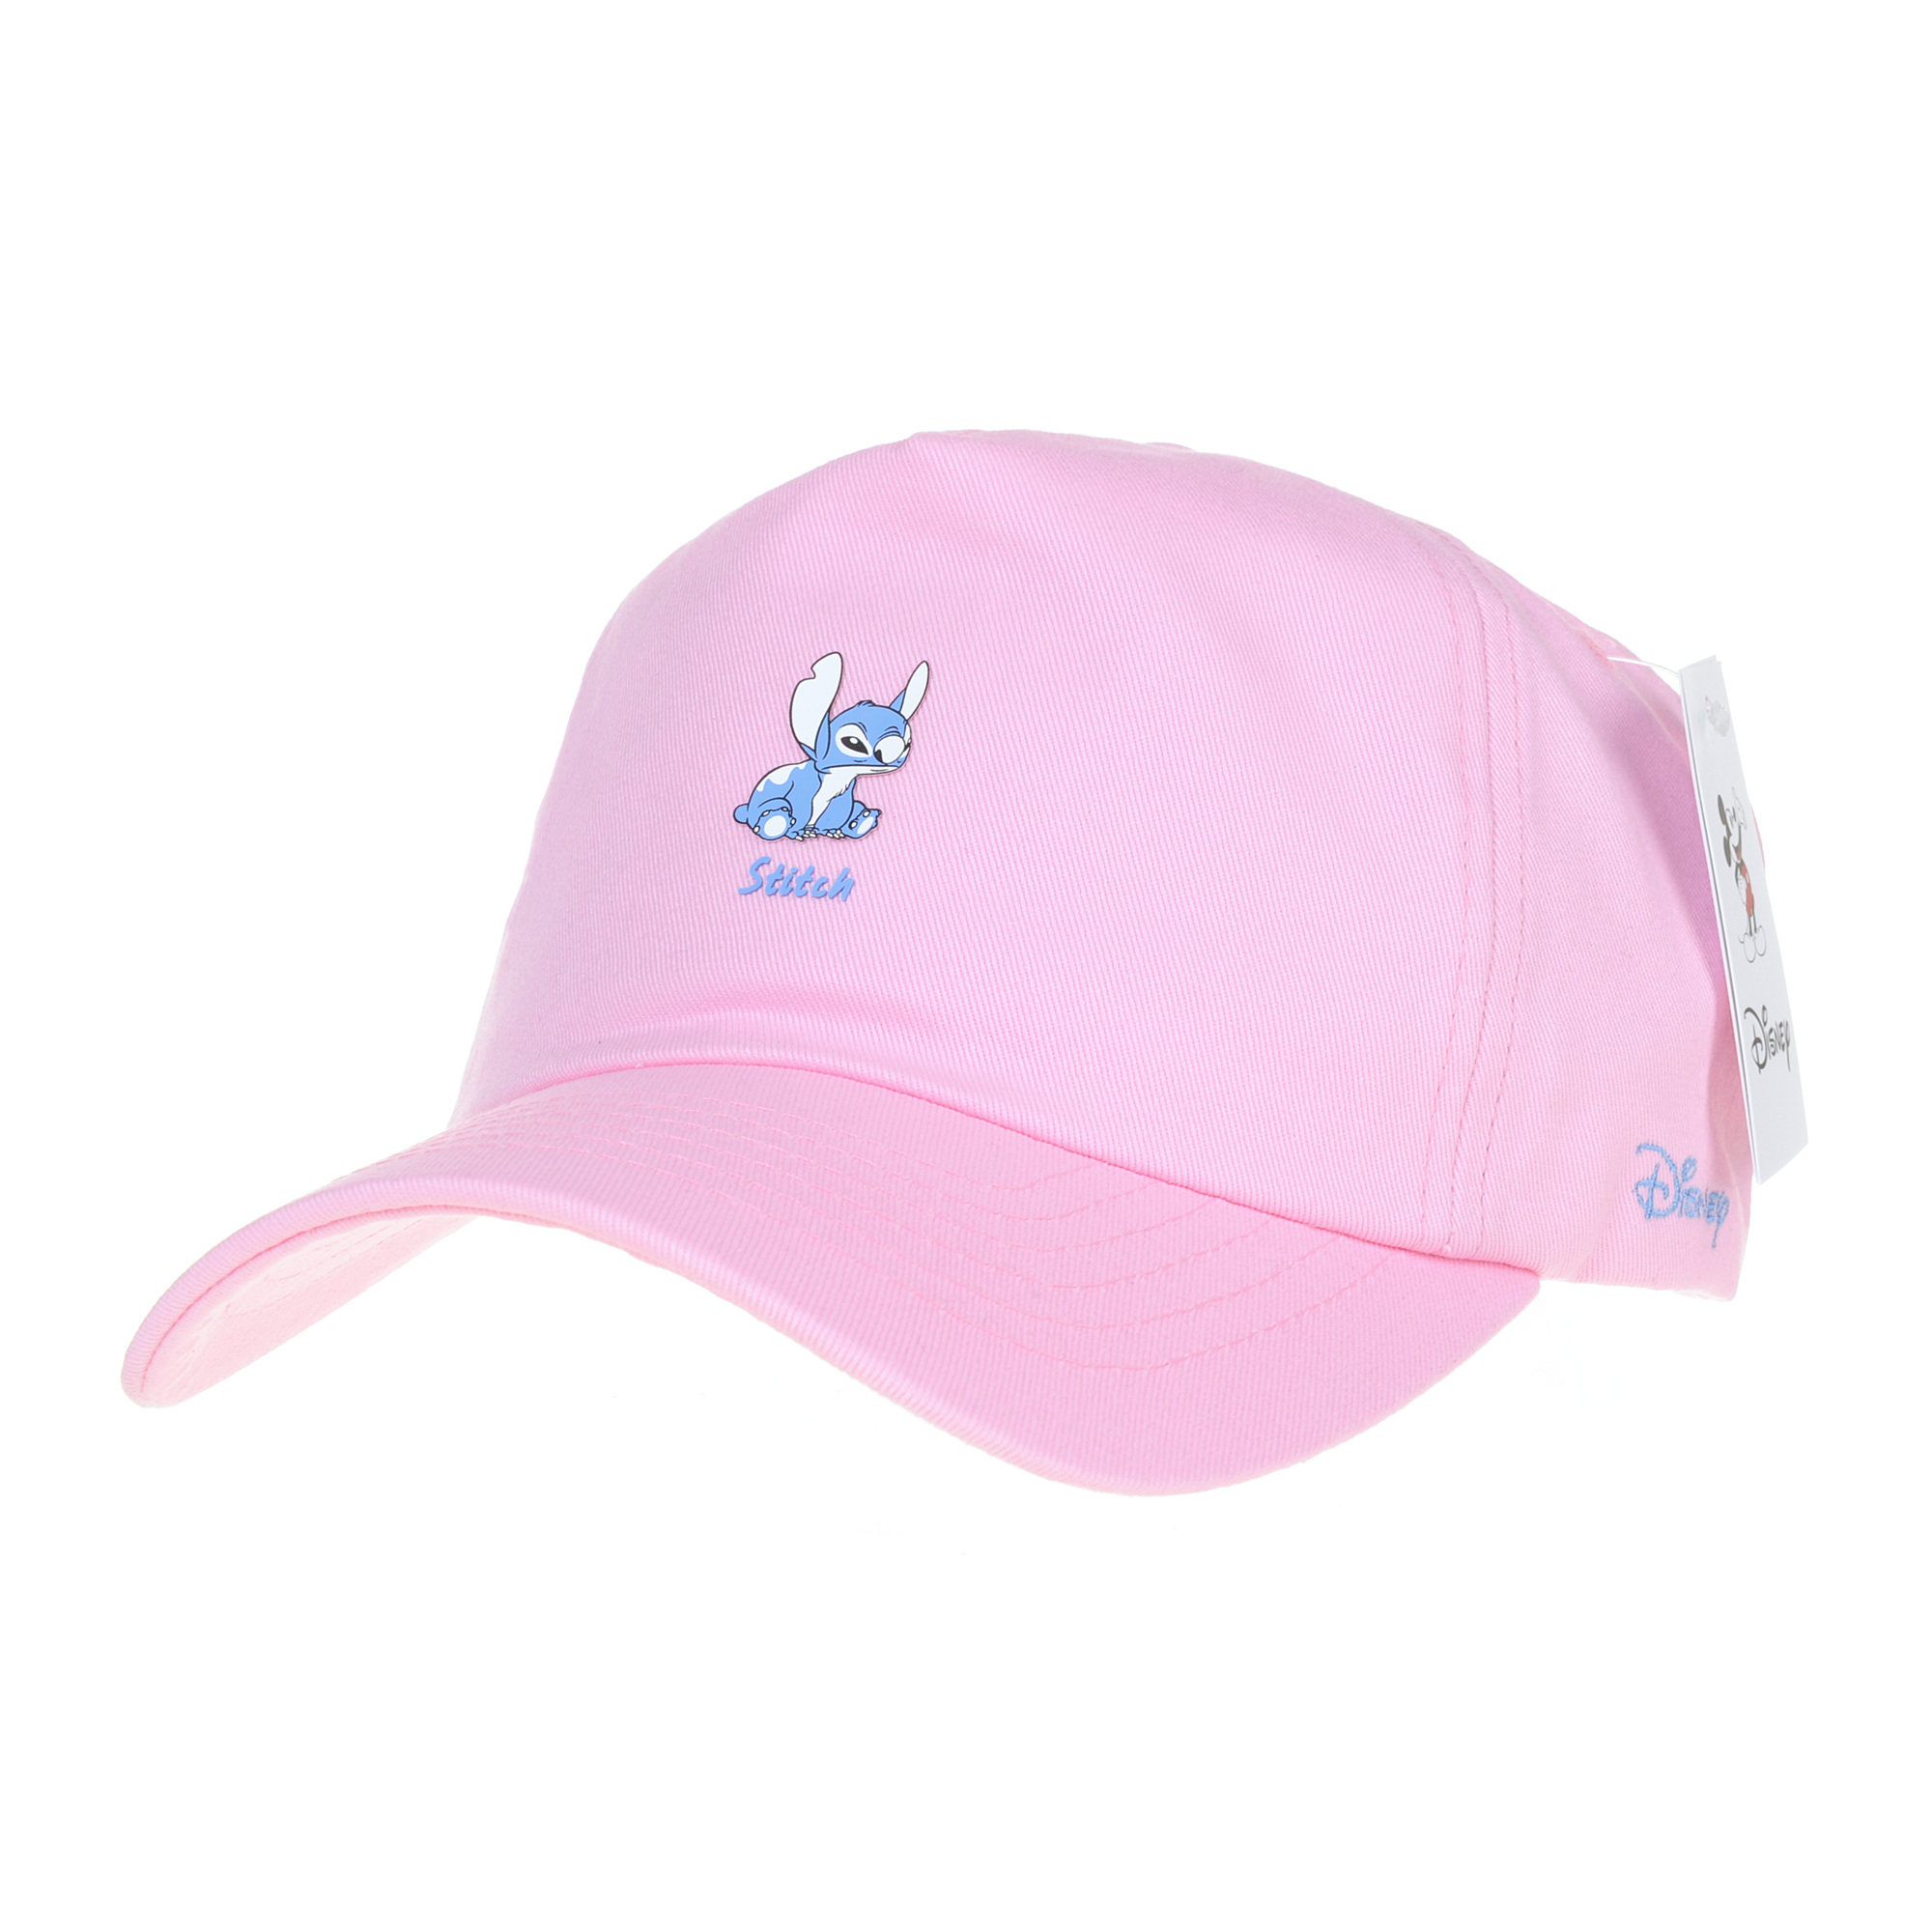 ee93365c52fc9 ... clearance withmoons disney ball cap lilo and stitch the cutest alien hat  cr1308 pink 62b13 c1ba9